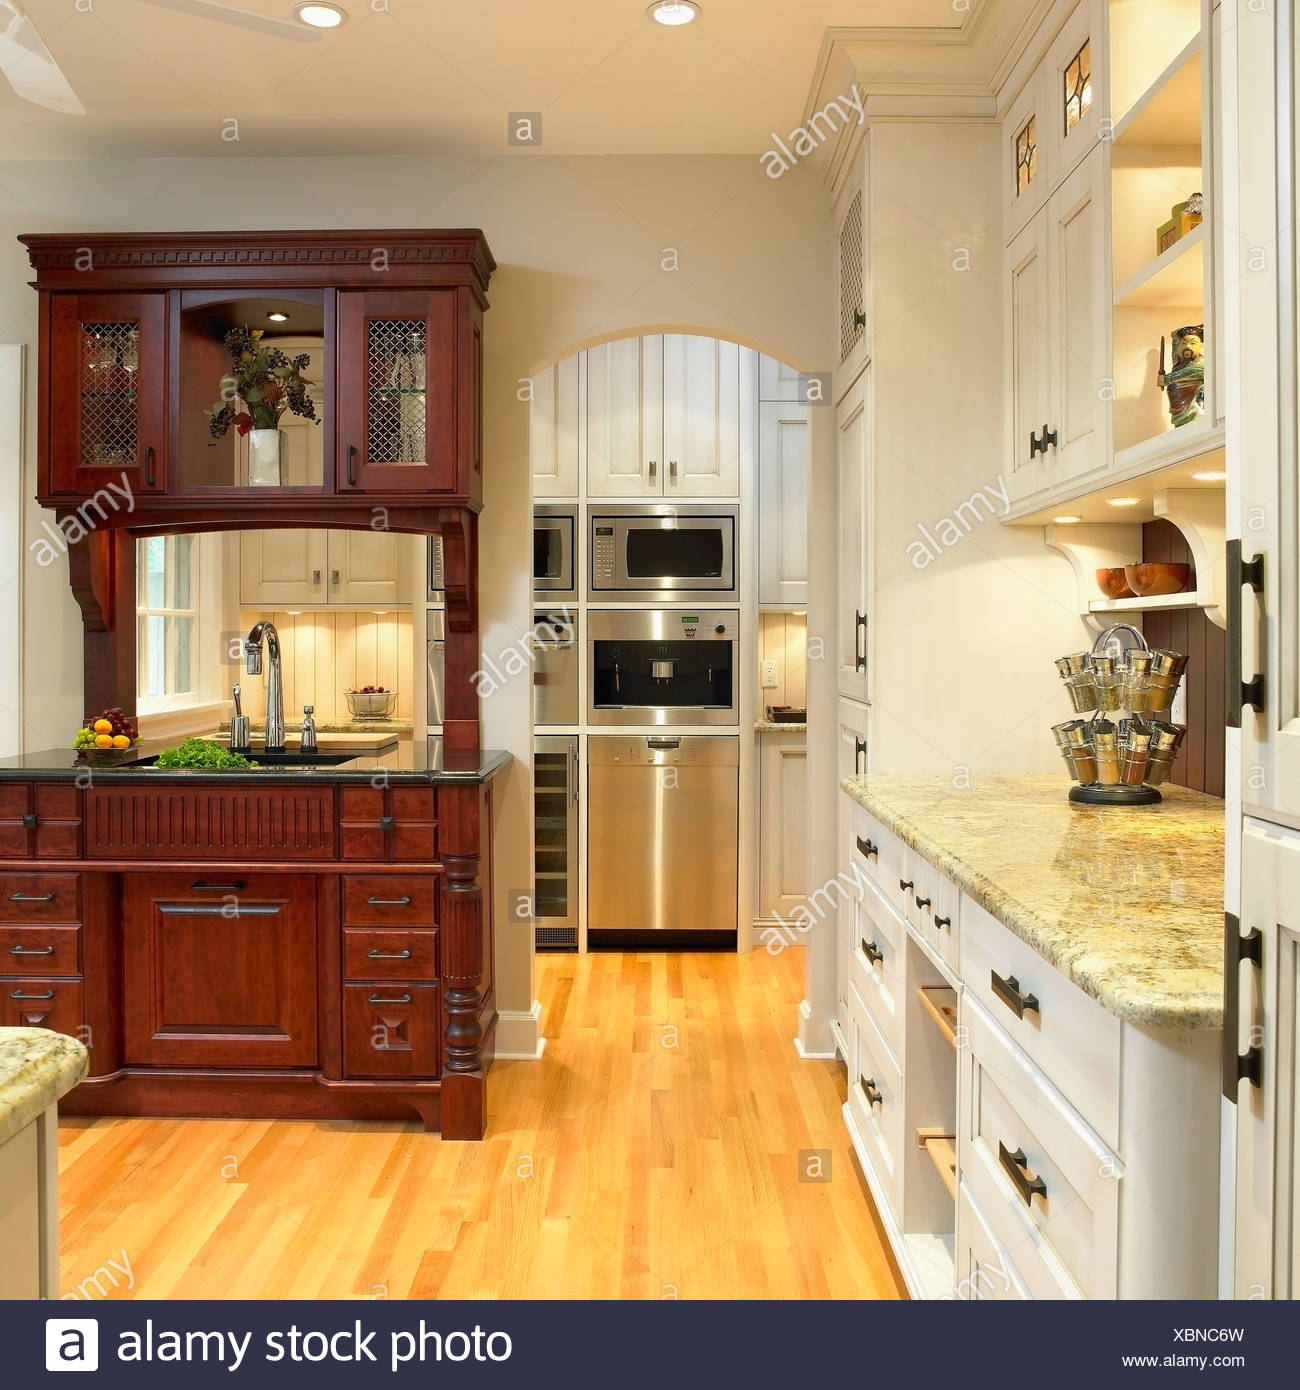 Kitchen Cabinets Victoria Traditional Kitchen With Cream Cabinets And Built In Dark Wood